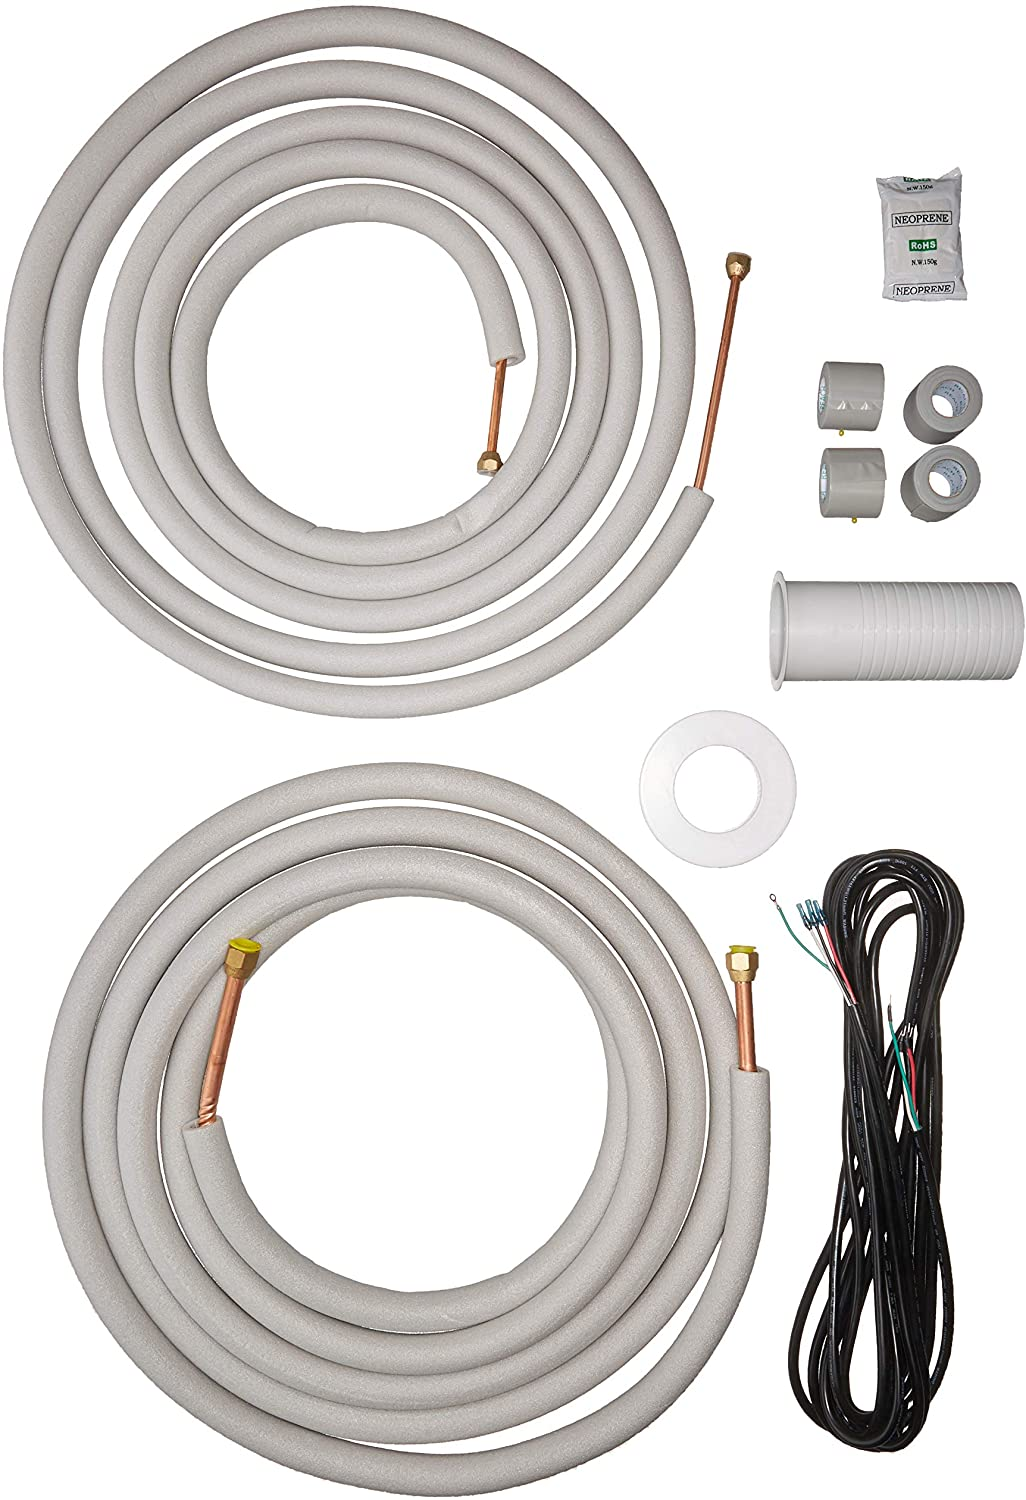 Senville 25 Ft. Copper Pipes for Mini Split Air Conditioner, 3/8